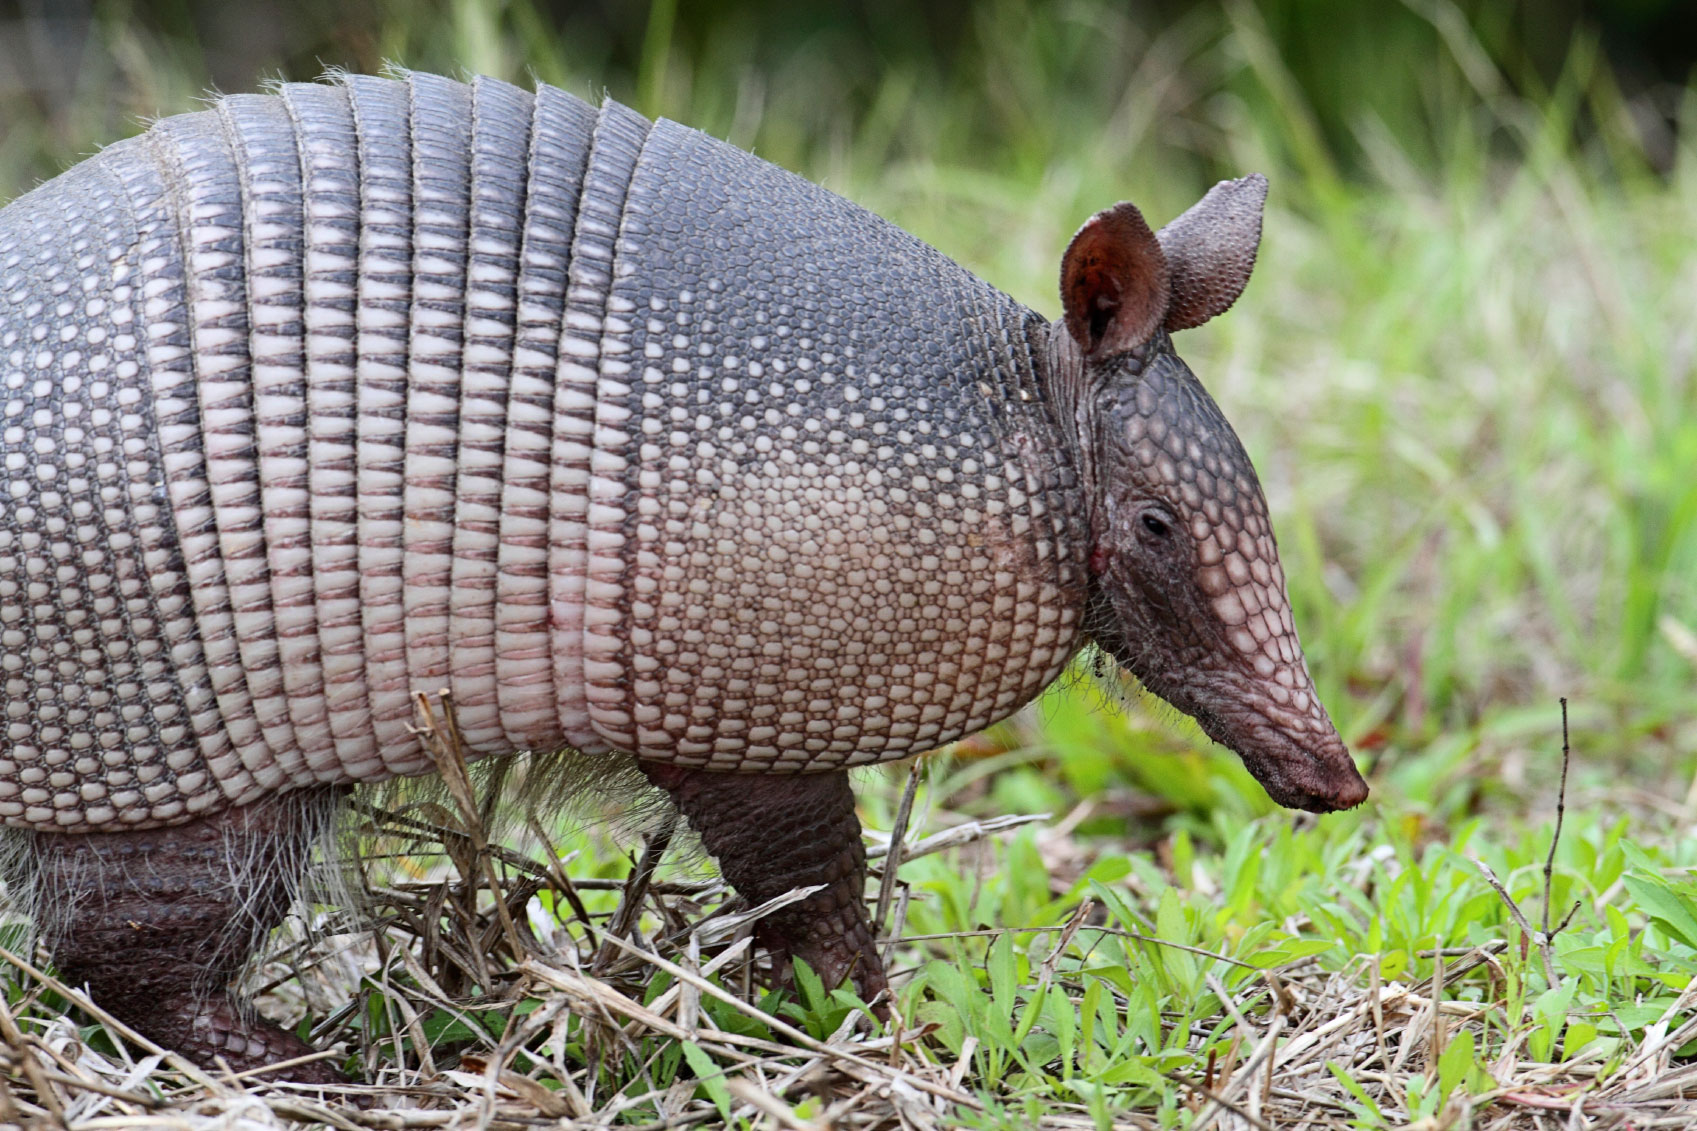 Armadillo Control How To Get Rid Of